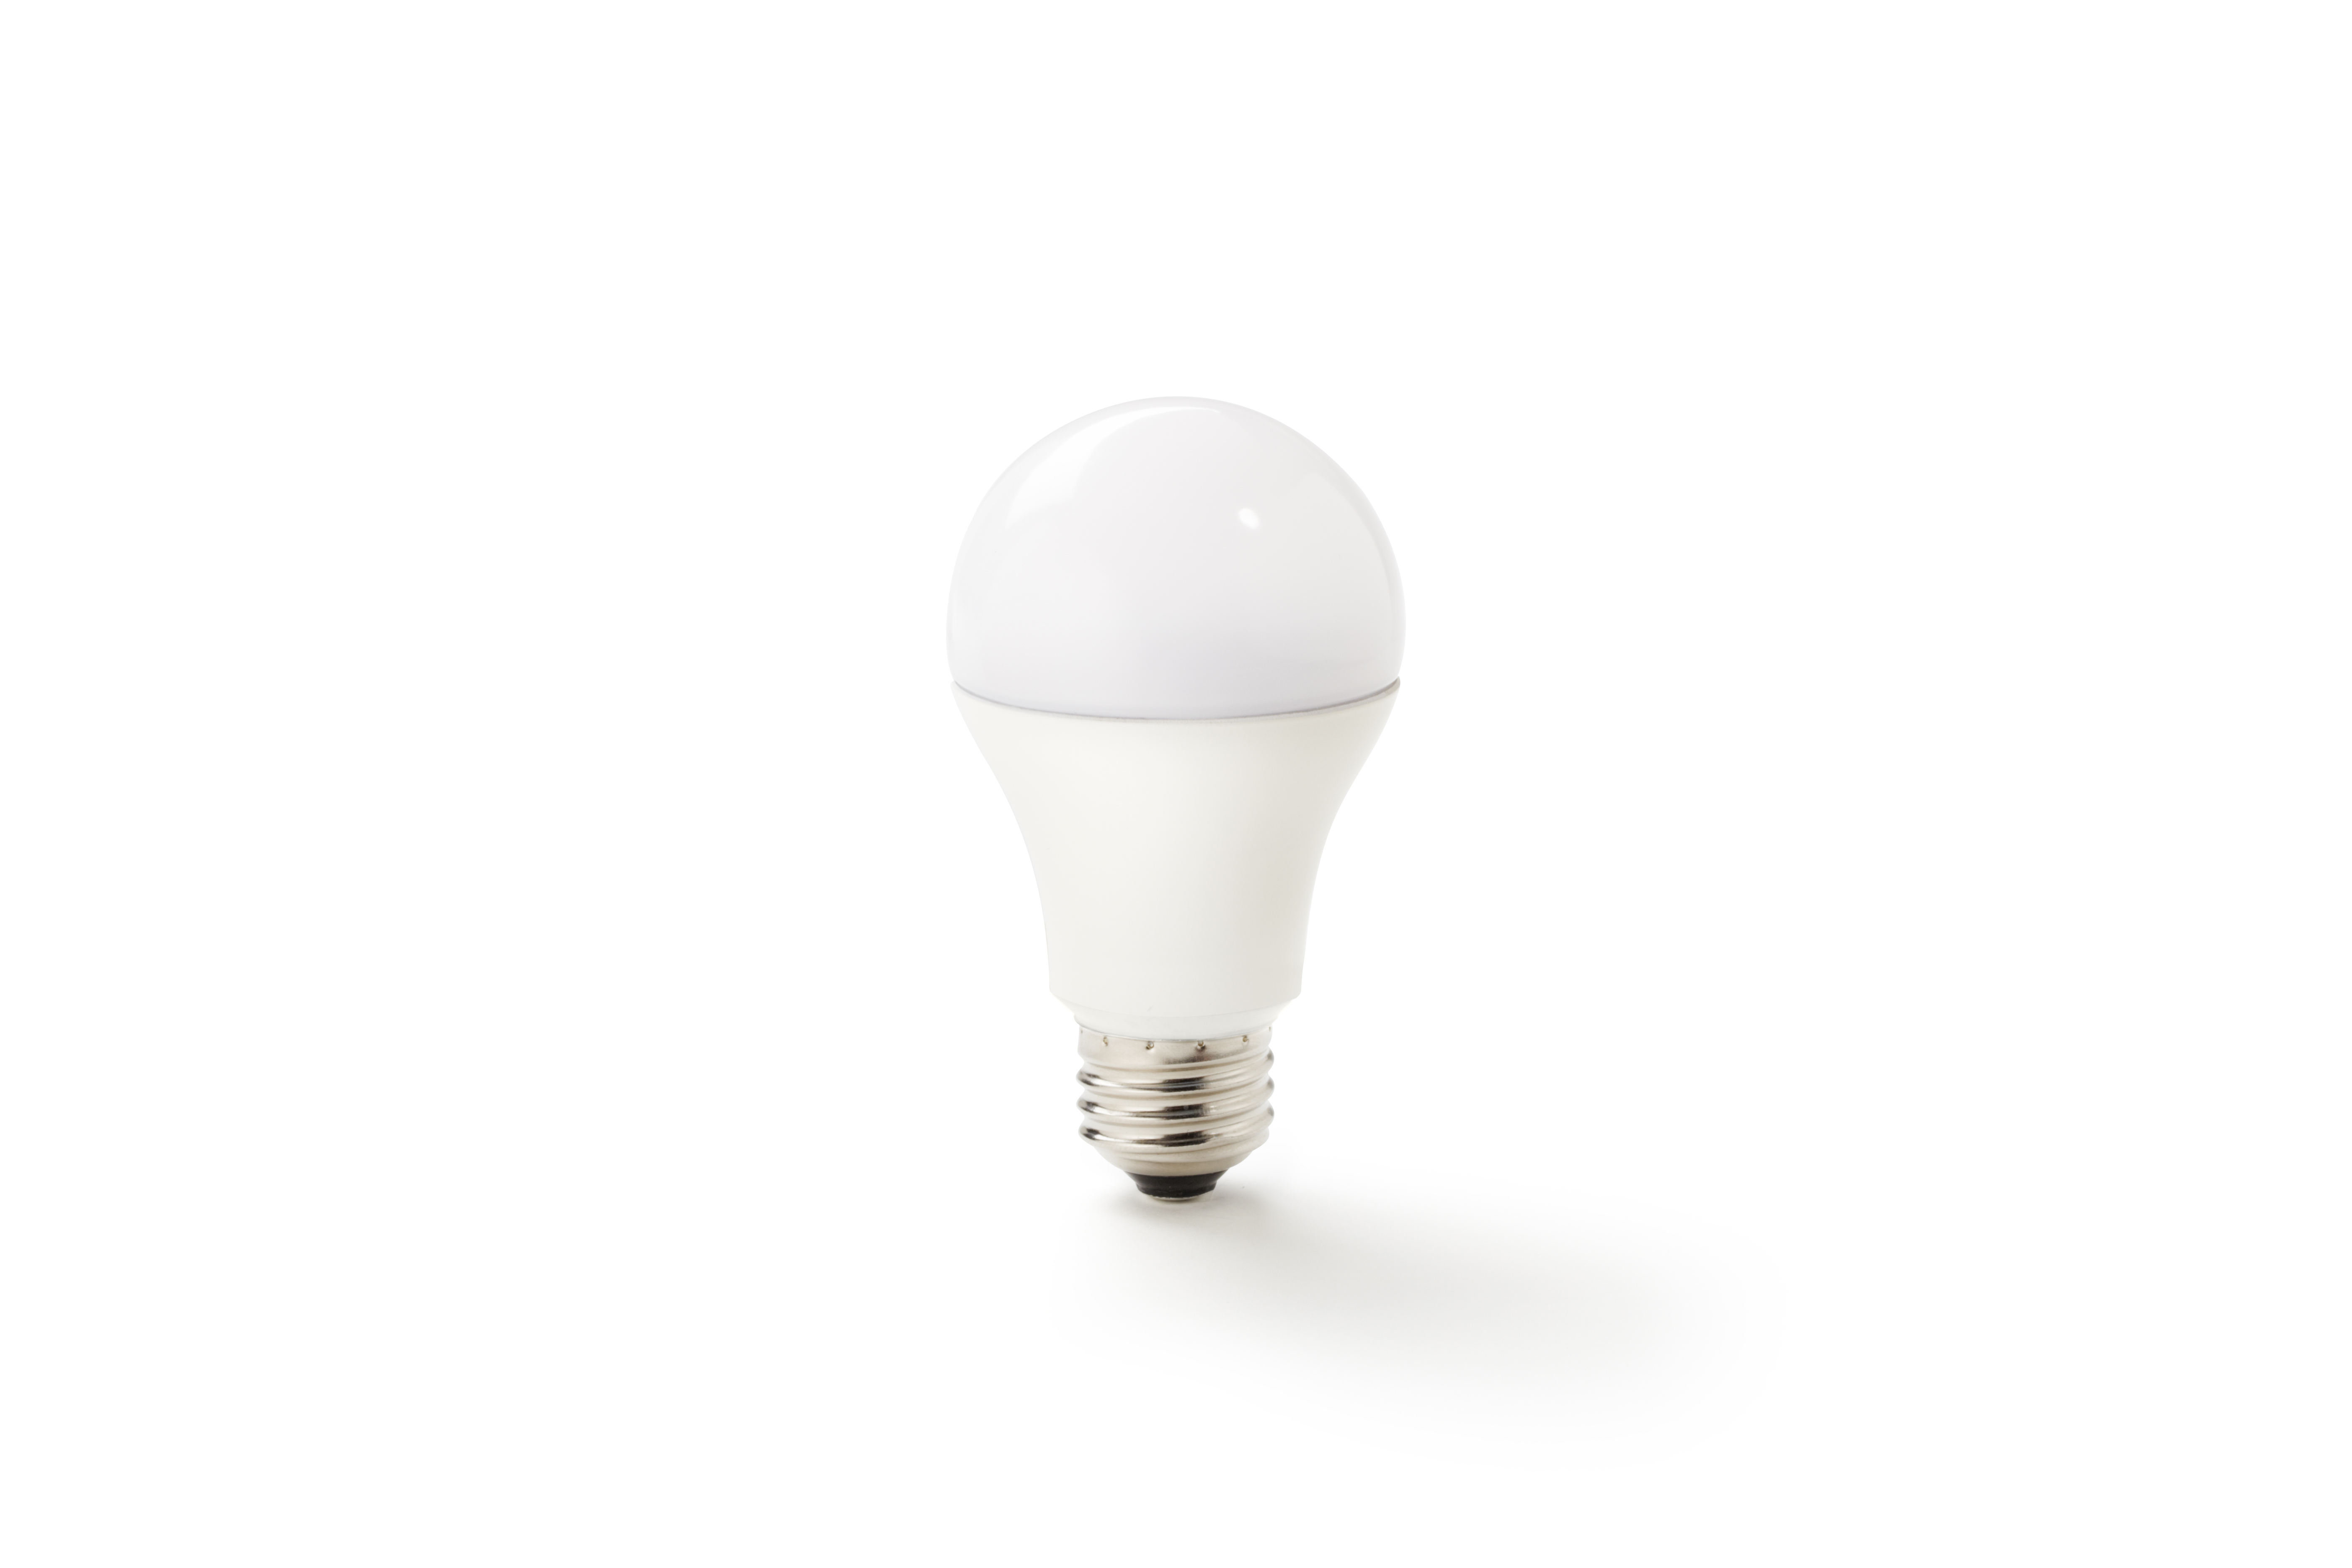 ge unveils plans for six new led light bulbs to provide. Black Bedroom Furniture Sets. Home Design Ideas